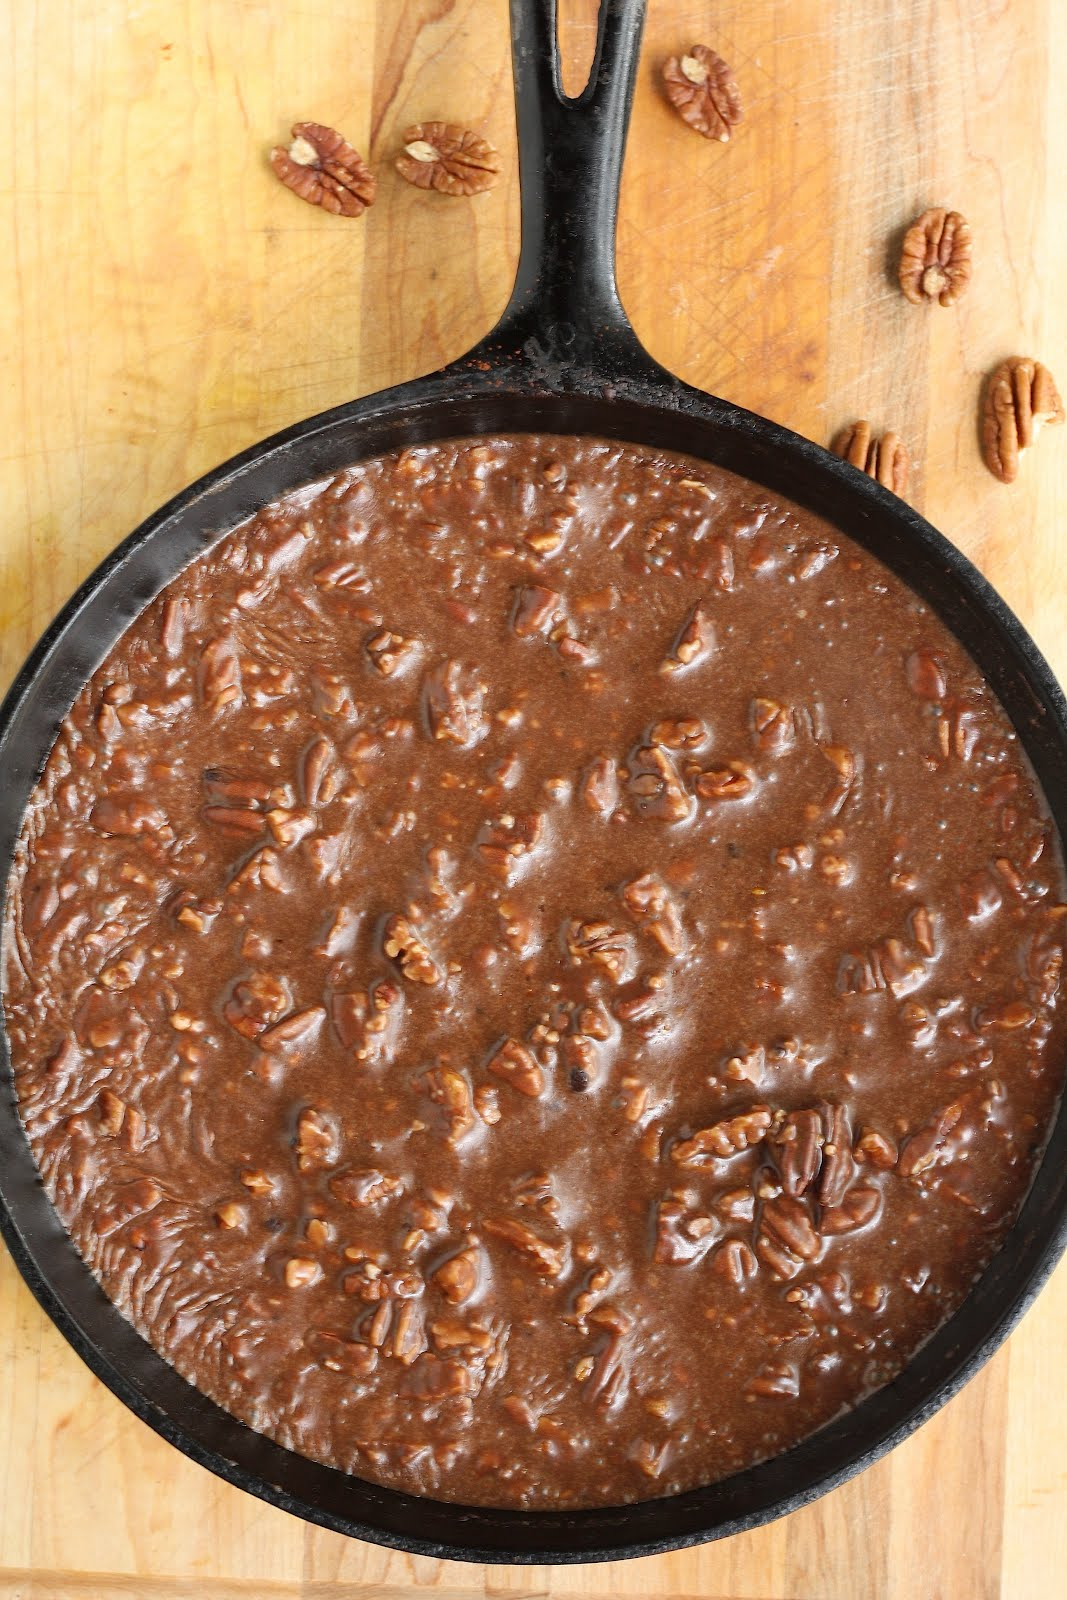 Gooey Chocolate Skillet Cake